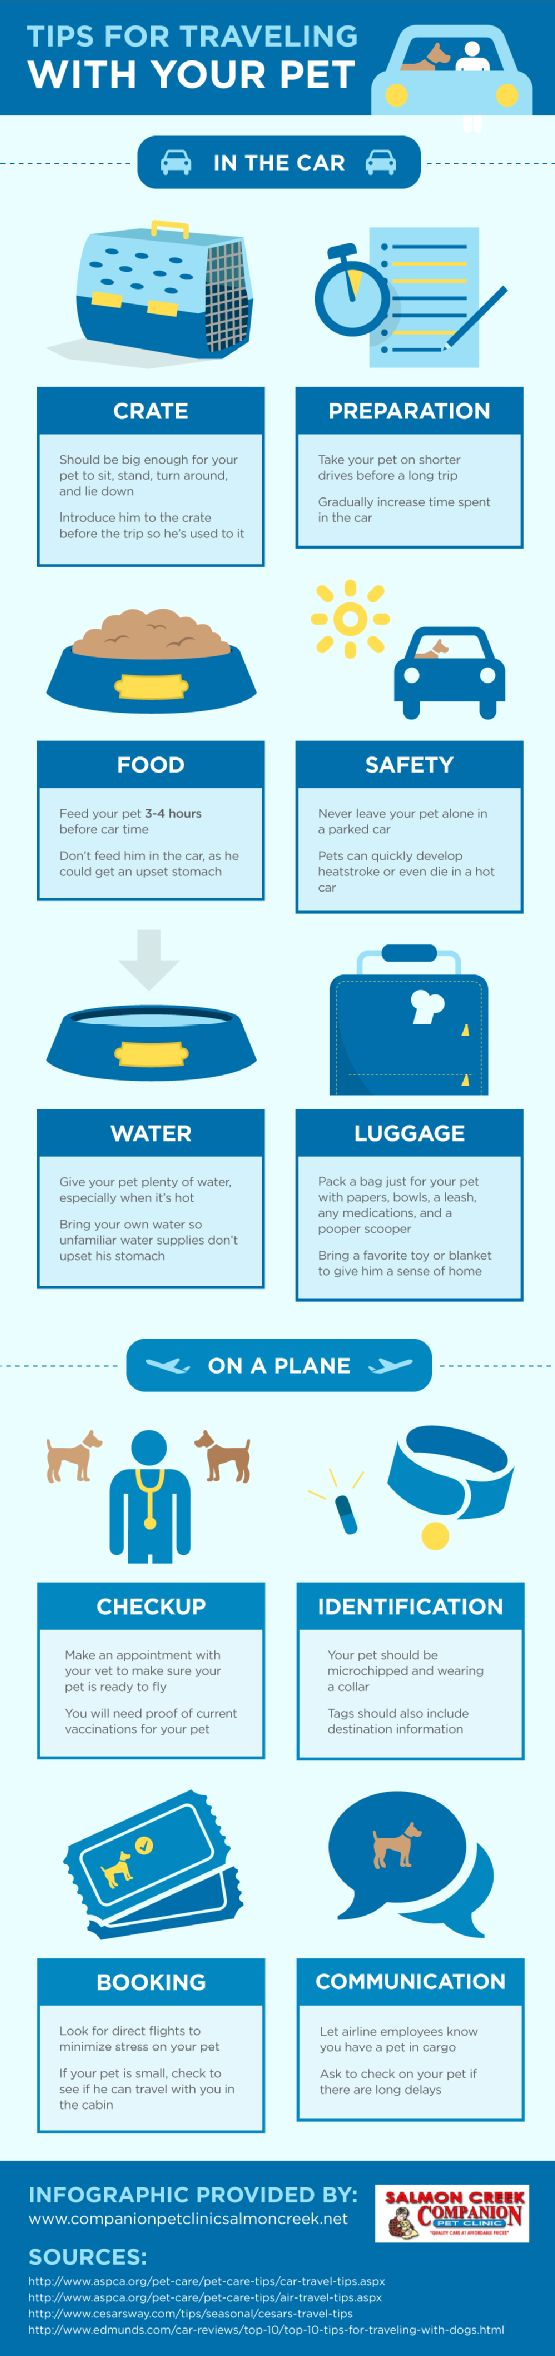 Before taking a road trip with your furry friend, take him on short drives so he gets used to spending time in the car. Check out this infographic from a pet clinic in Vancouver, Washington to learn how to travel safely with pets.